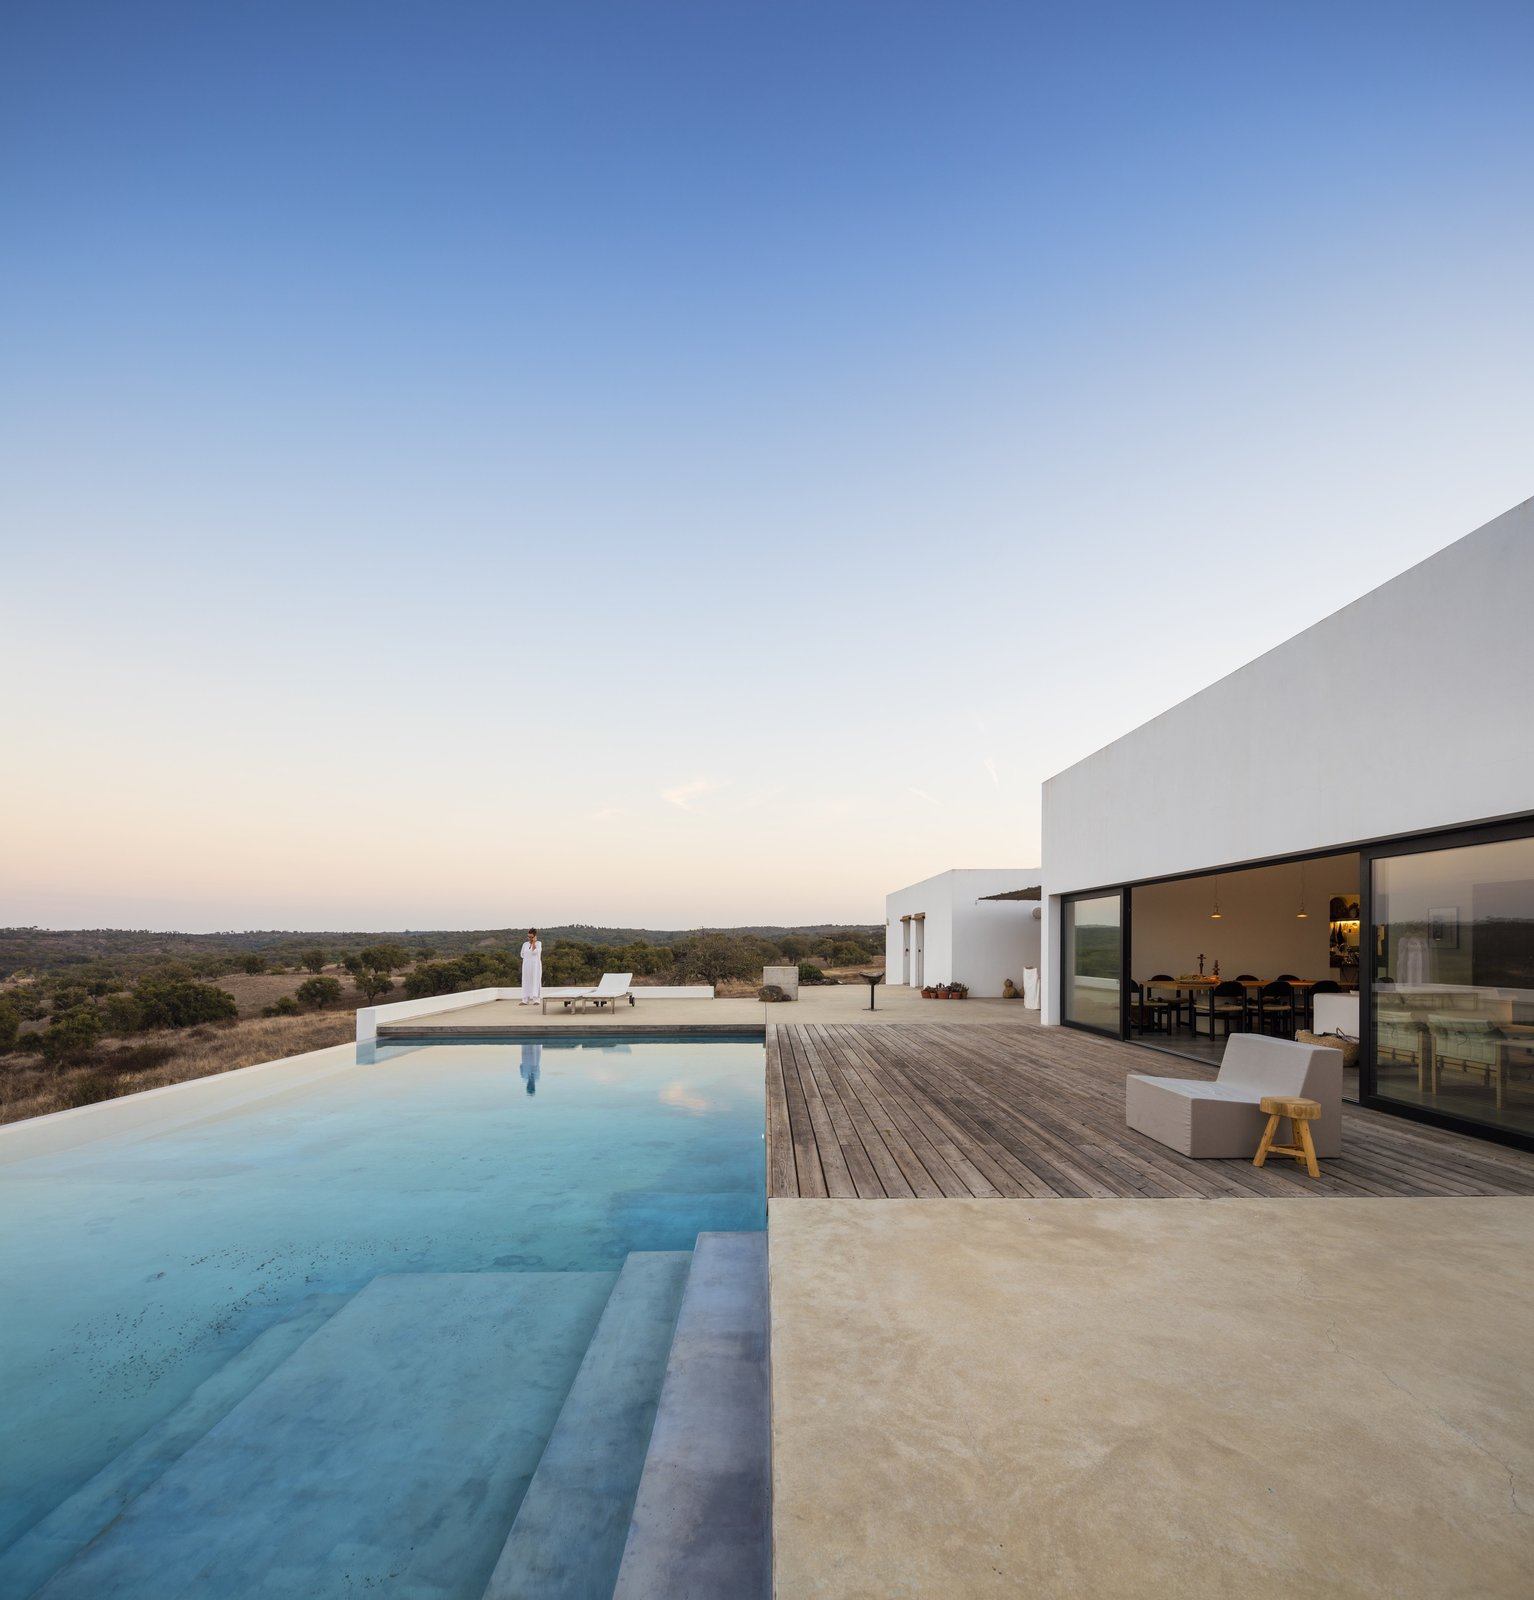 #pooldesign #exterior #outdoor #outside #landscape #diningroom #ColectivArquitectura #Grandola #Portugal   Photo 12 of 12 in Take a Plunge Into These Enticing Modern Pools from Pools